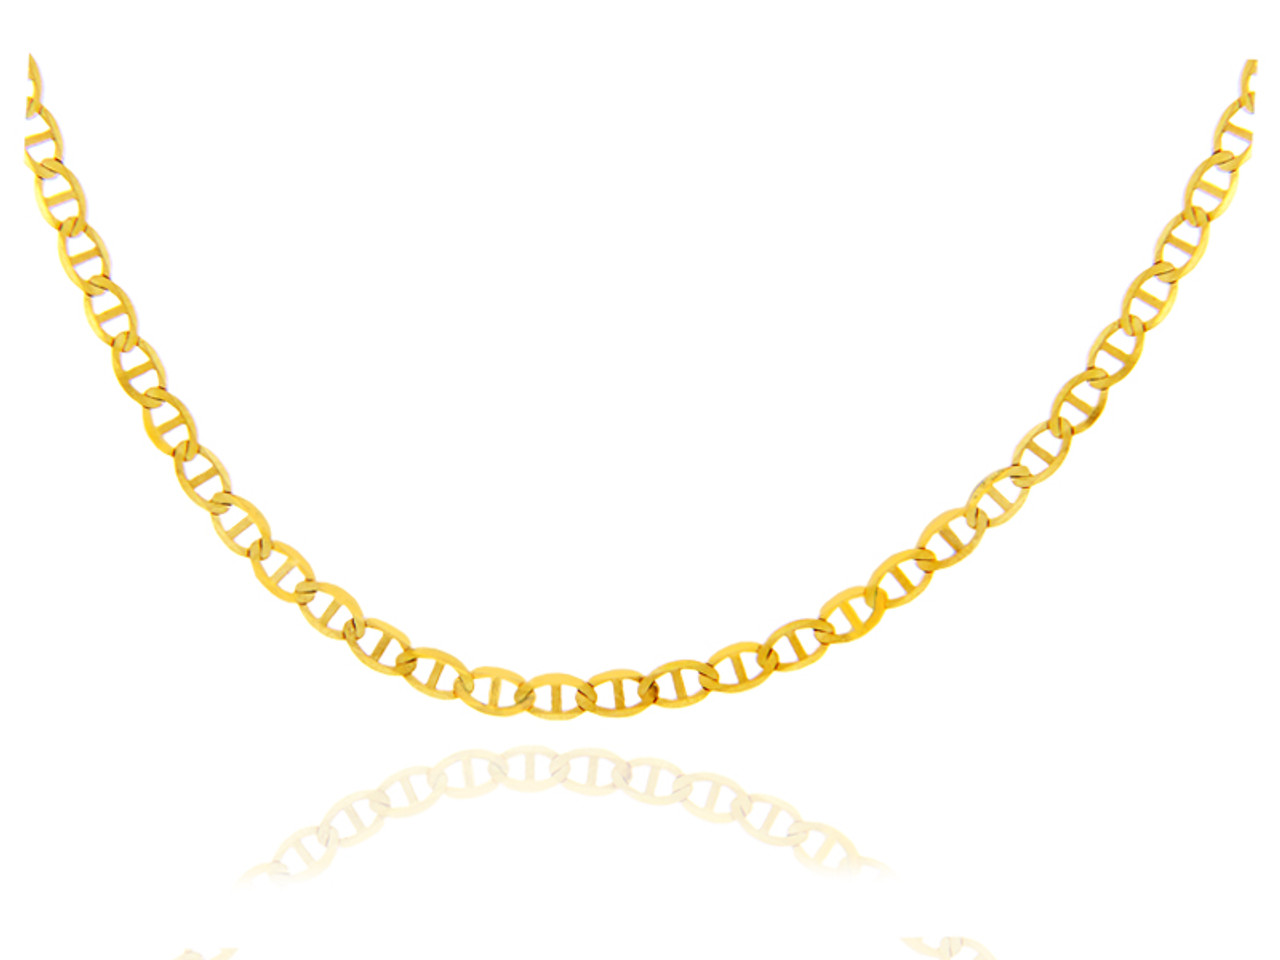 stainless d necklace products goldtone men steel chain mens mariner link hsn s